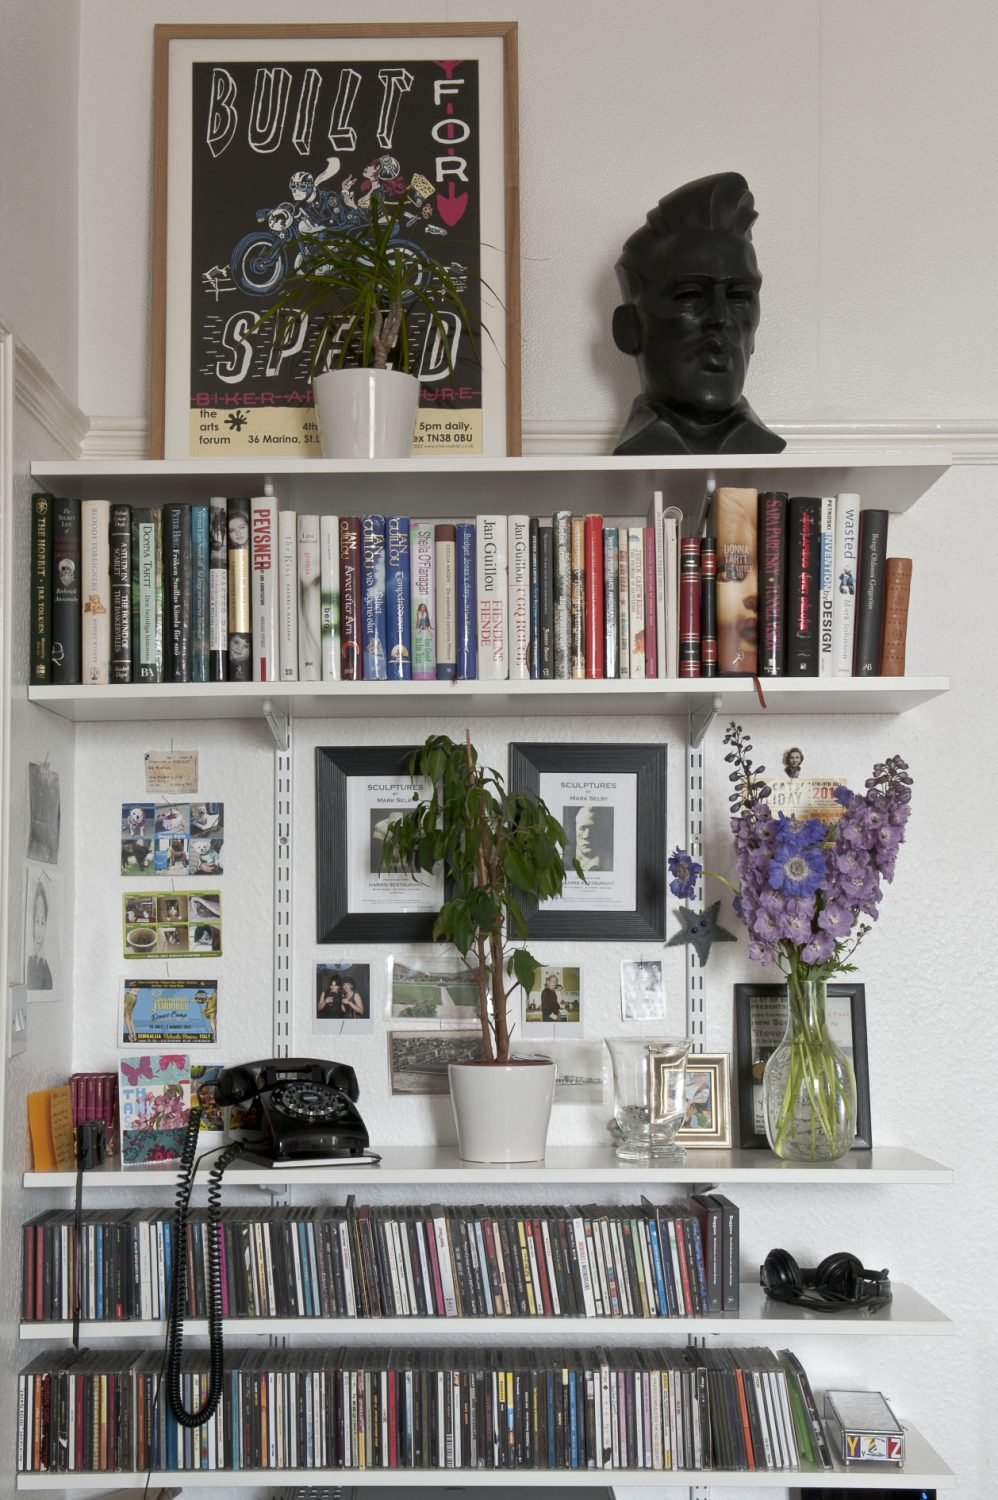 In one corner, several sets of shelves are crammed with books and pictures, including the poster for a recent exhibition in Hastings called Built for Speed and a black resin bust of Elvis by local artist, Mark Selby